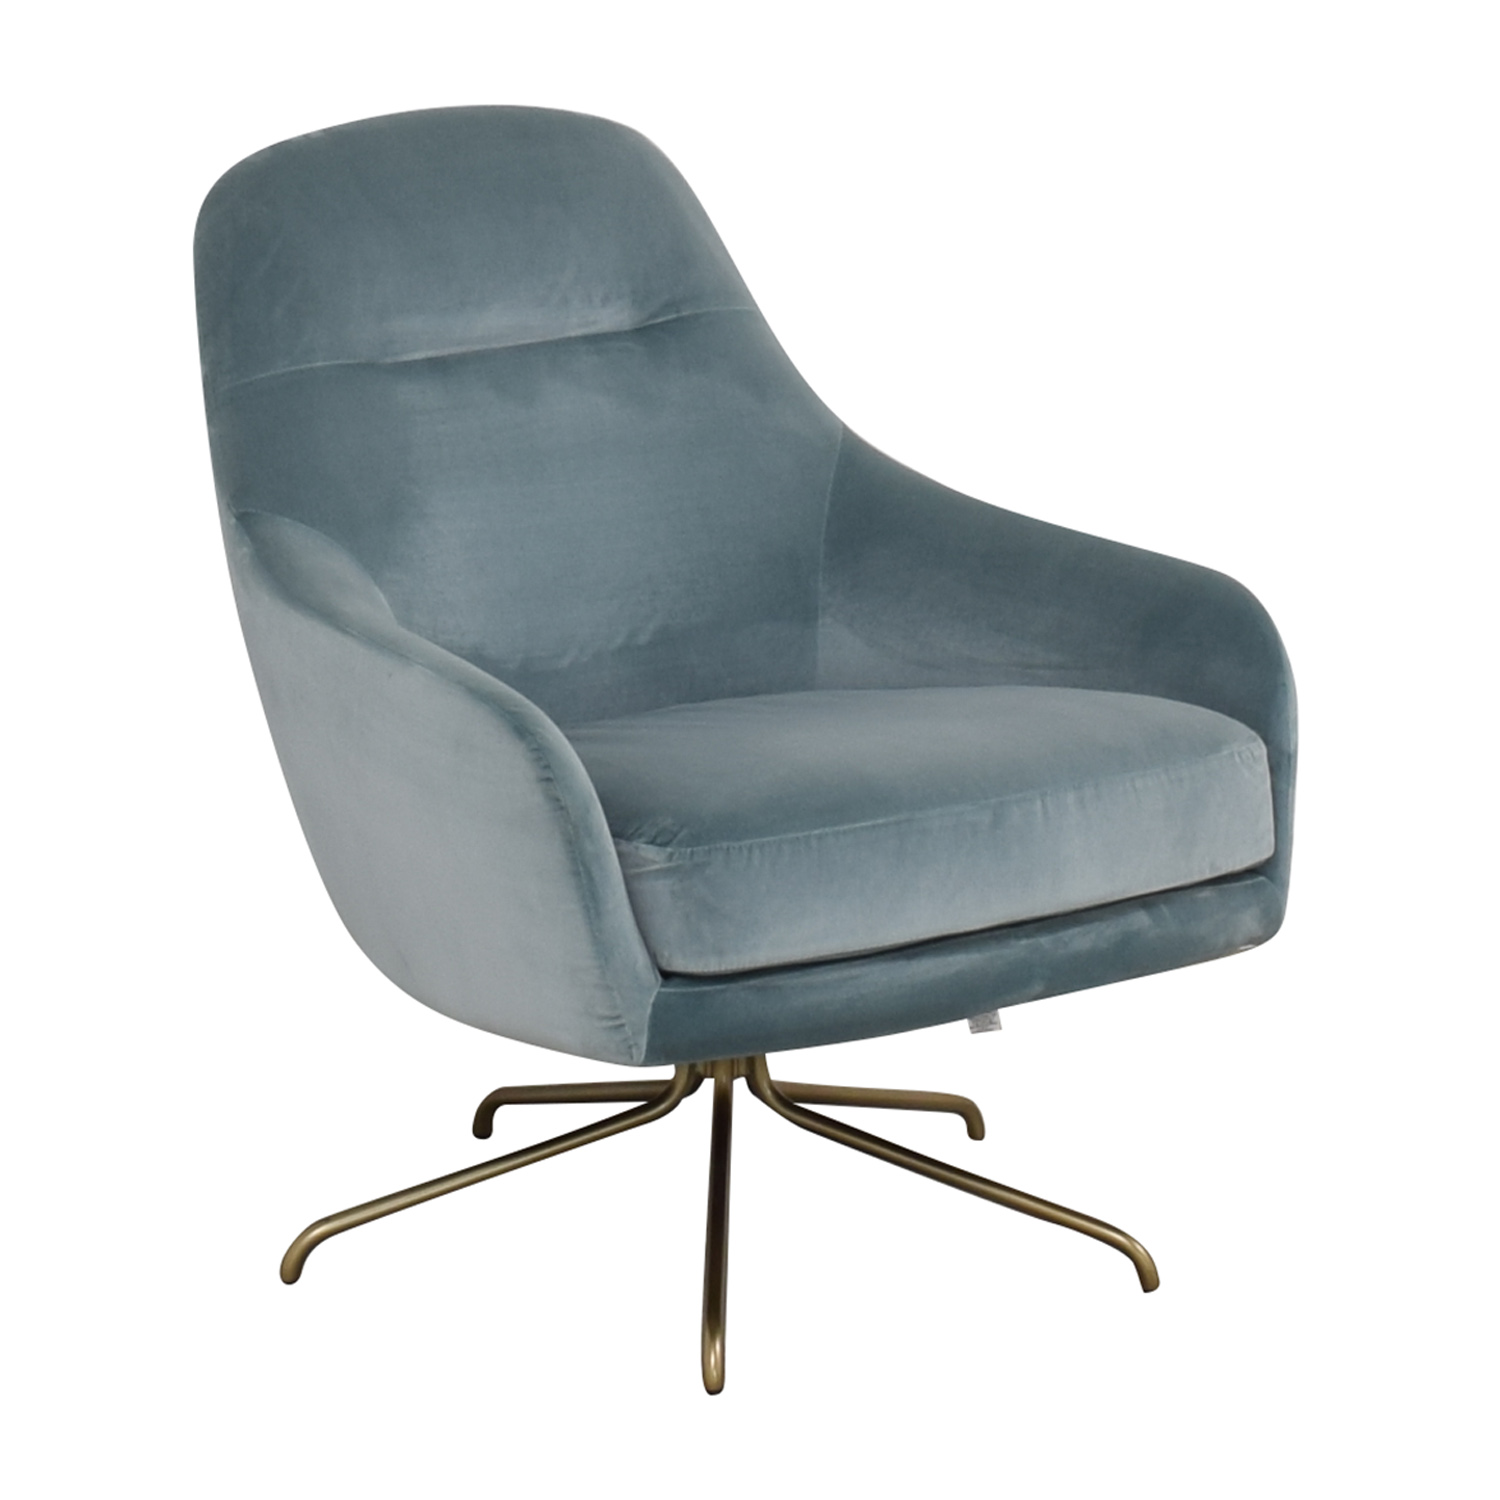 West Elm West Elm Valentina Swivel Chair second hand